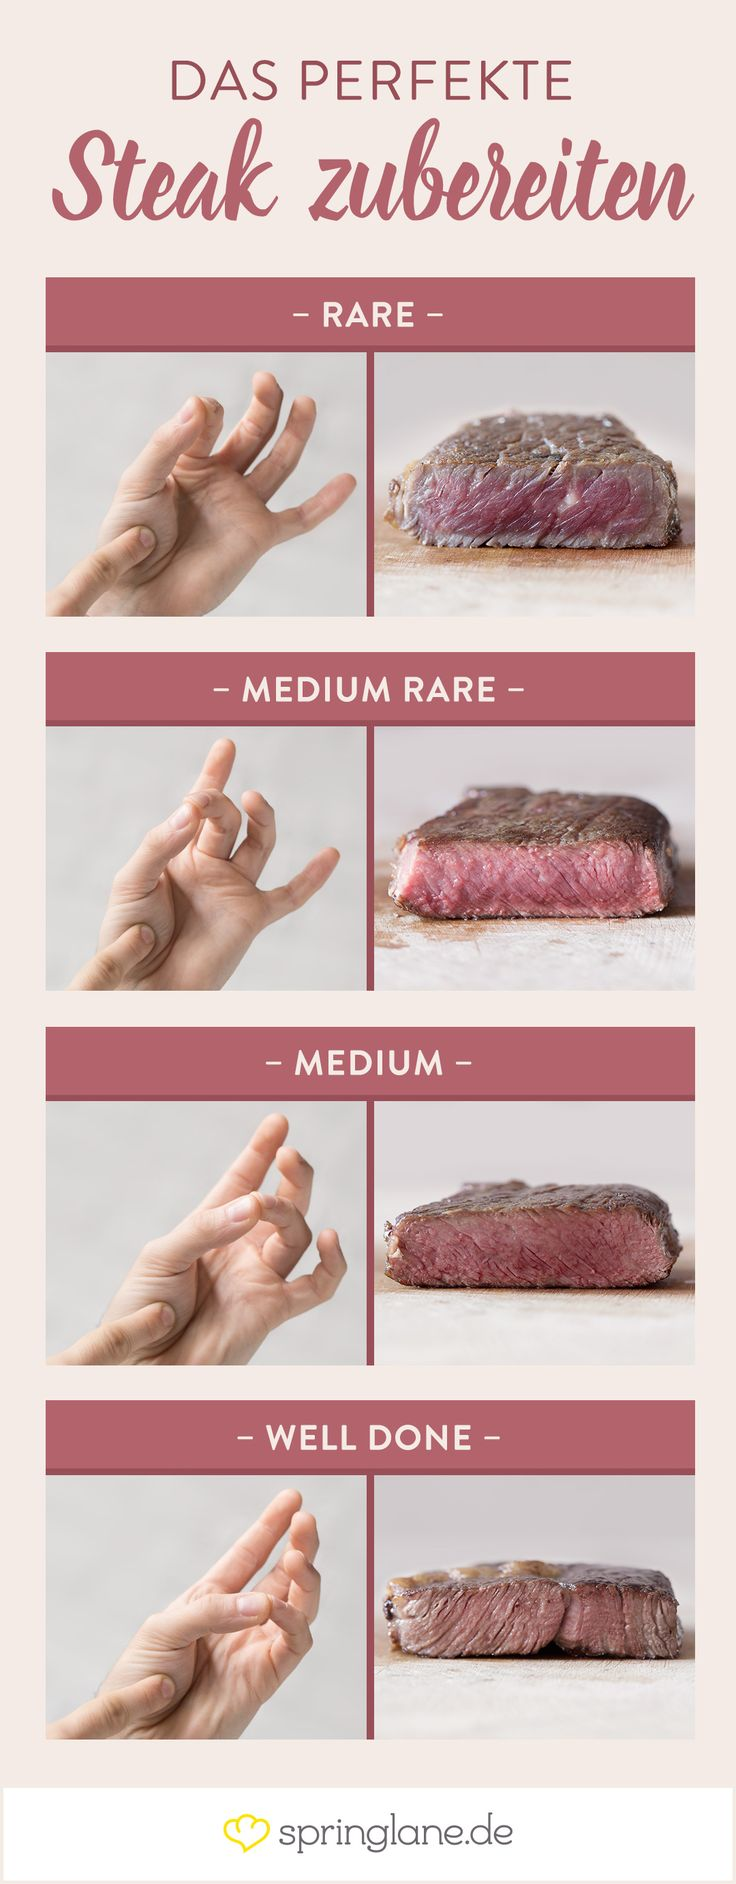 Das perfekte Steak zubereiten – Der ultimative Guide